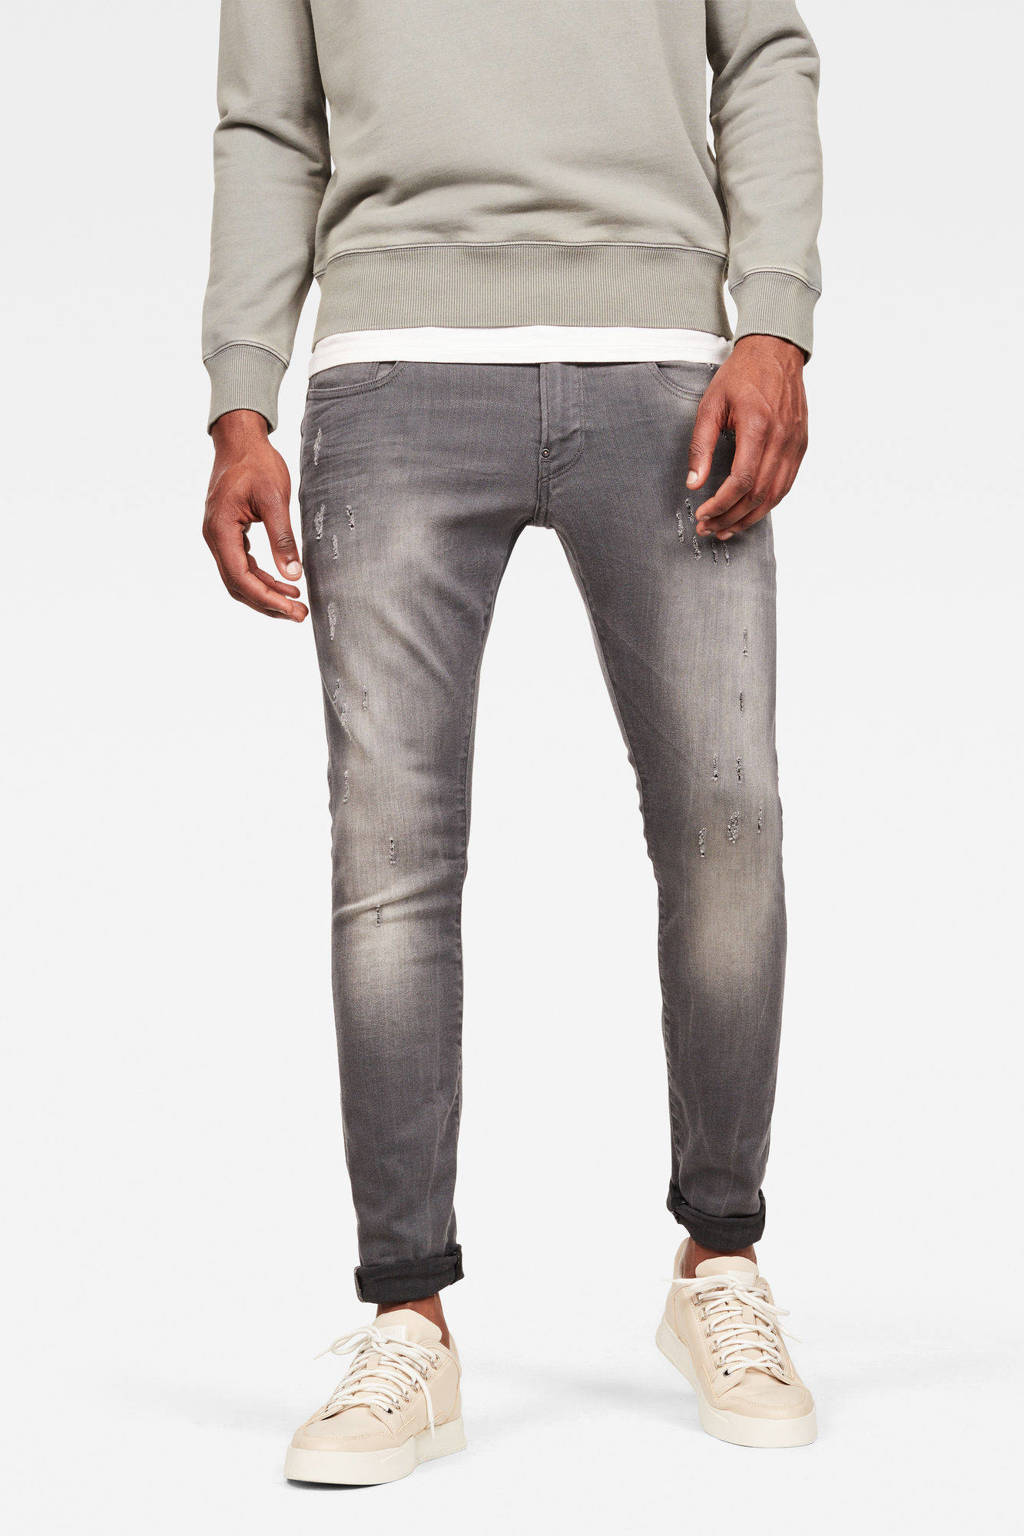 G-Star RAW Revend super slim fit jeans it aged destroy defend, light aged destroyed